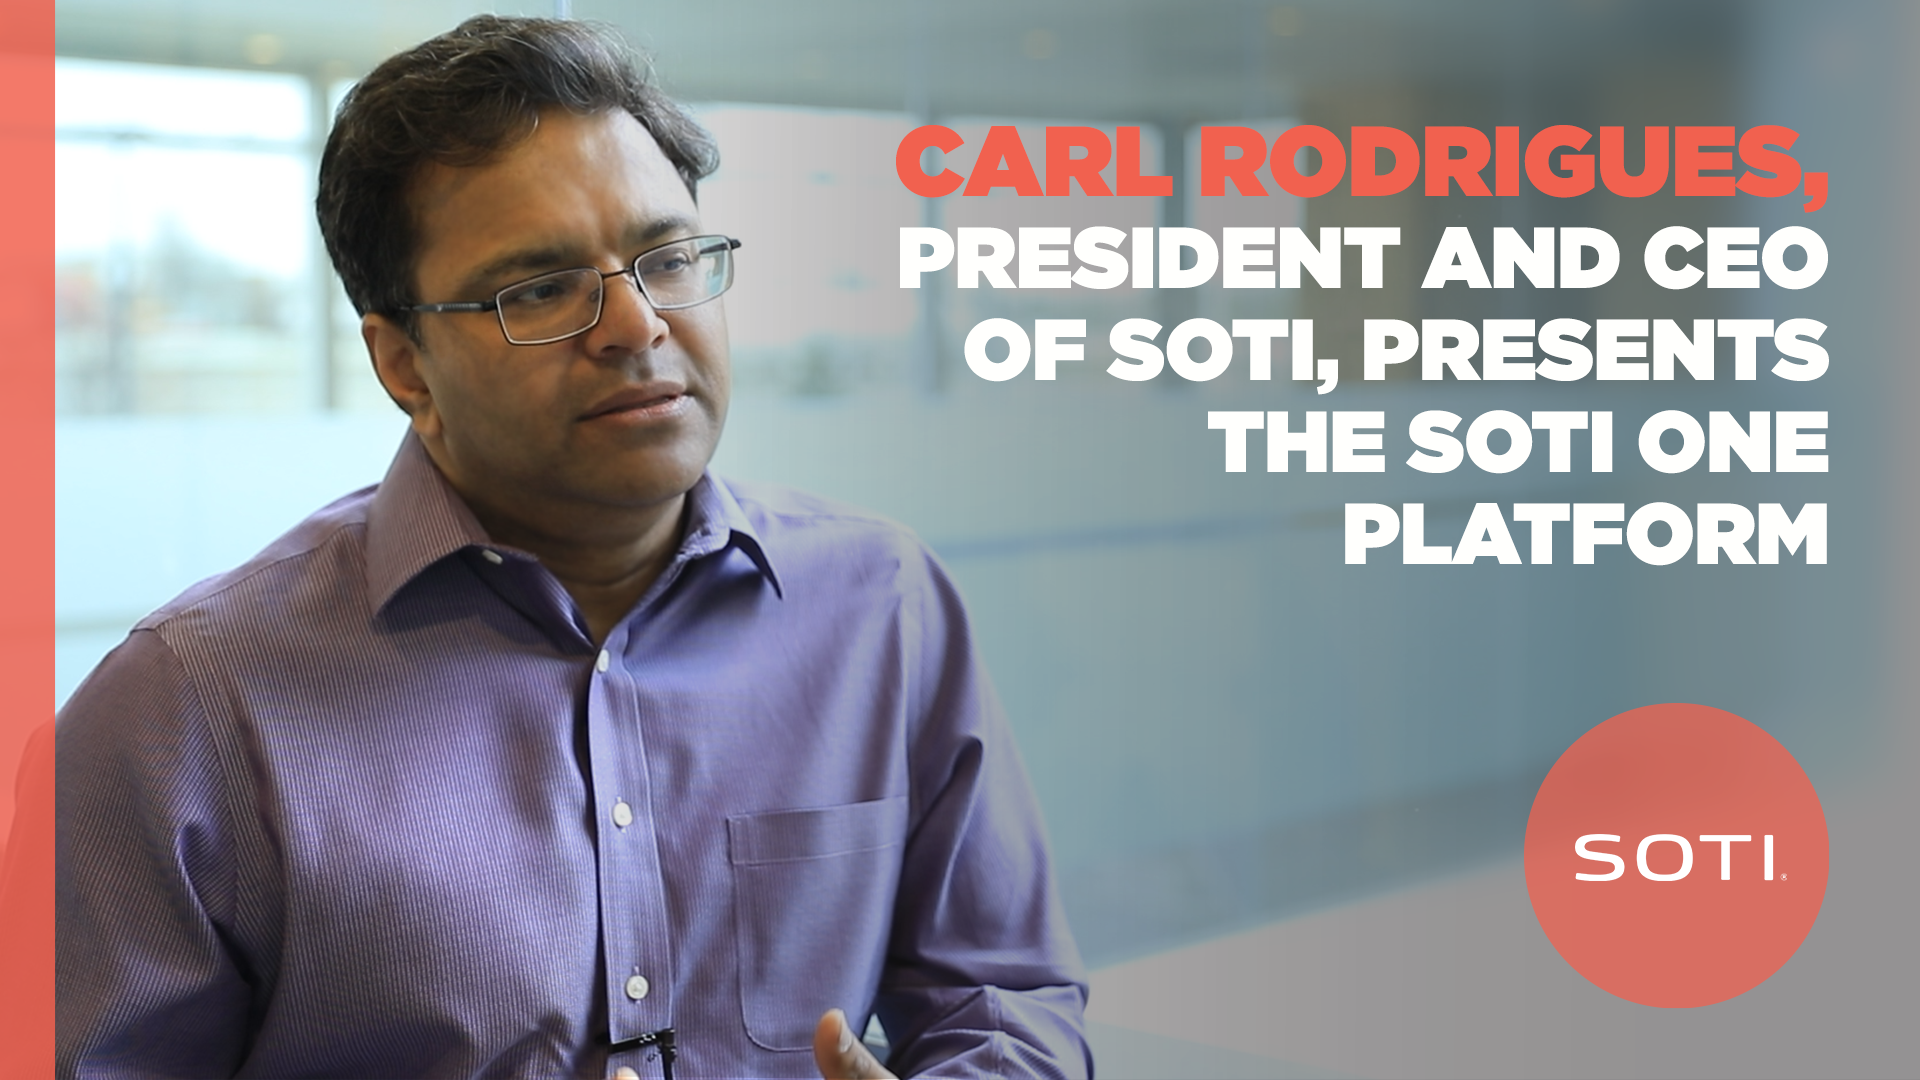 Video of Carl Rodrigues, President and CEO of SOTI, Presenting the SOTI ONE Platform